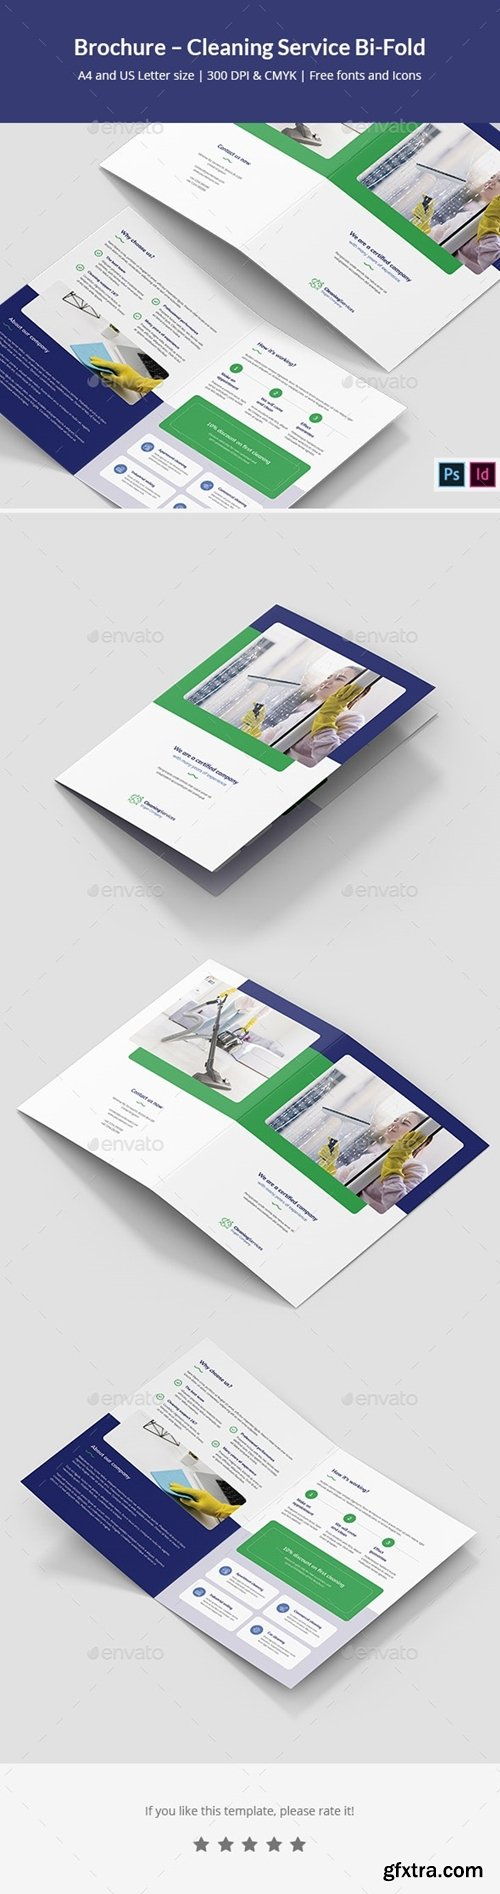 GraphicRiver - Brochure – Cleaning Service Bi-Fold 25570076